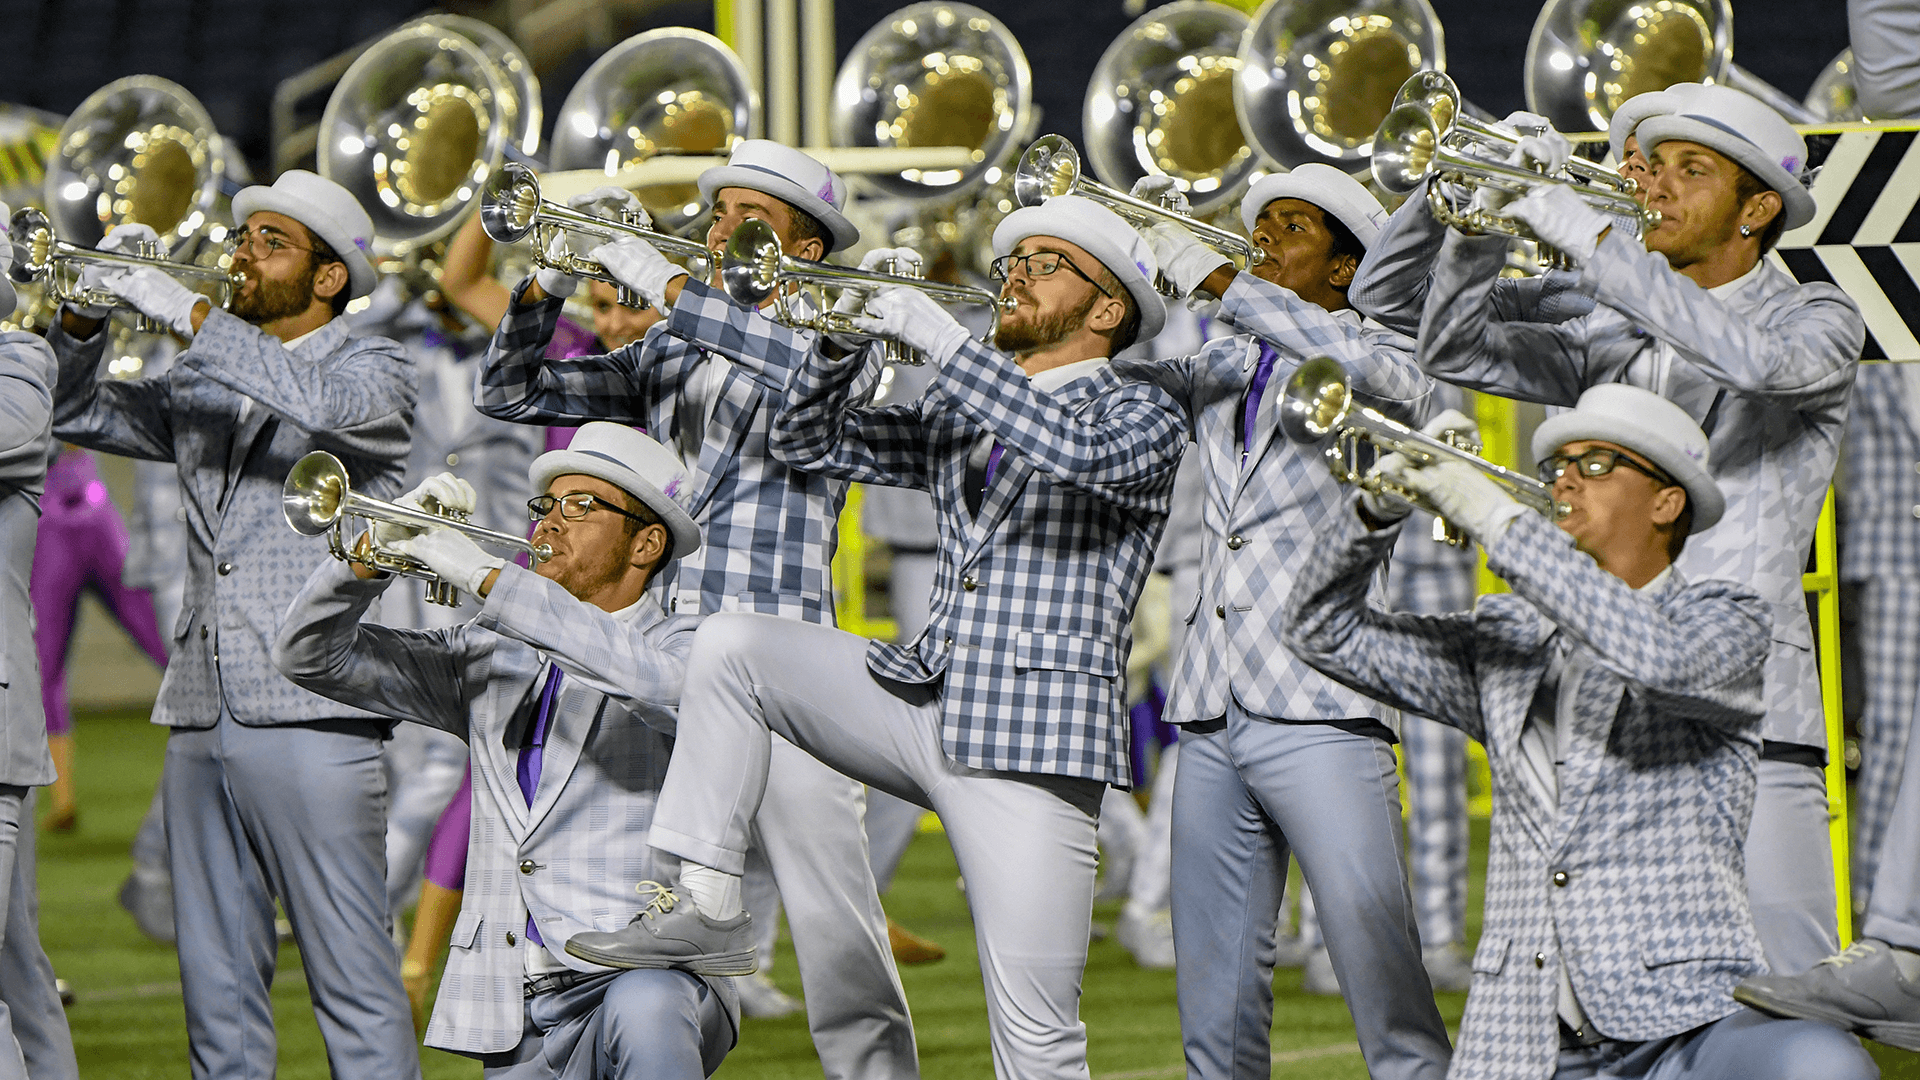 Innovations in Brass: Massillon